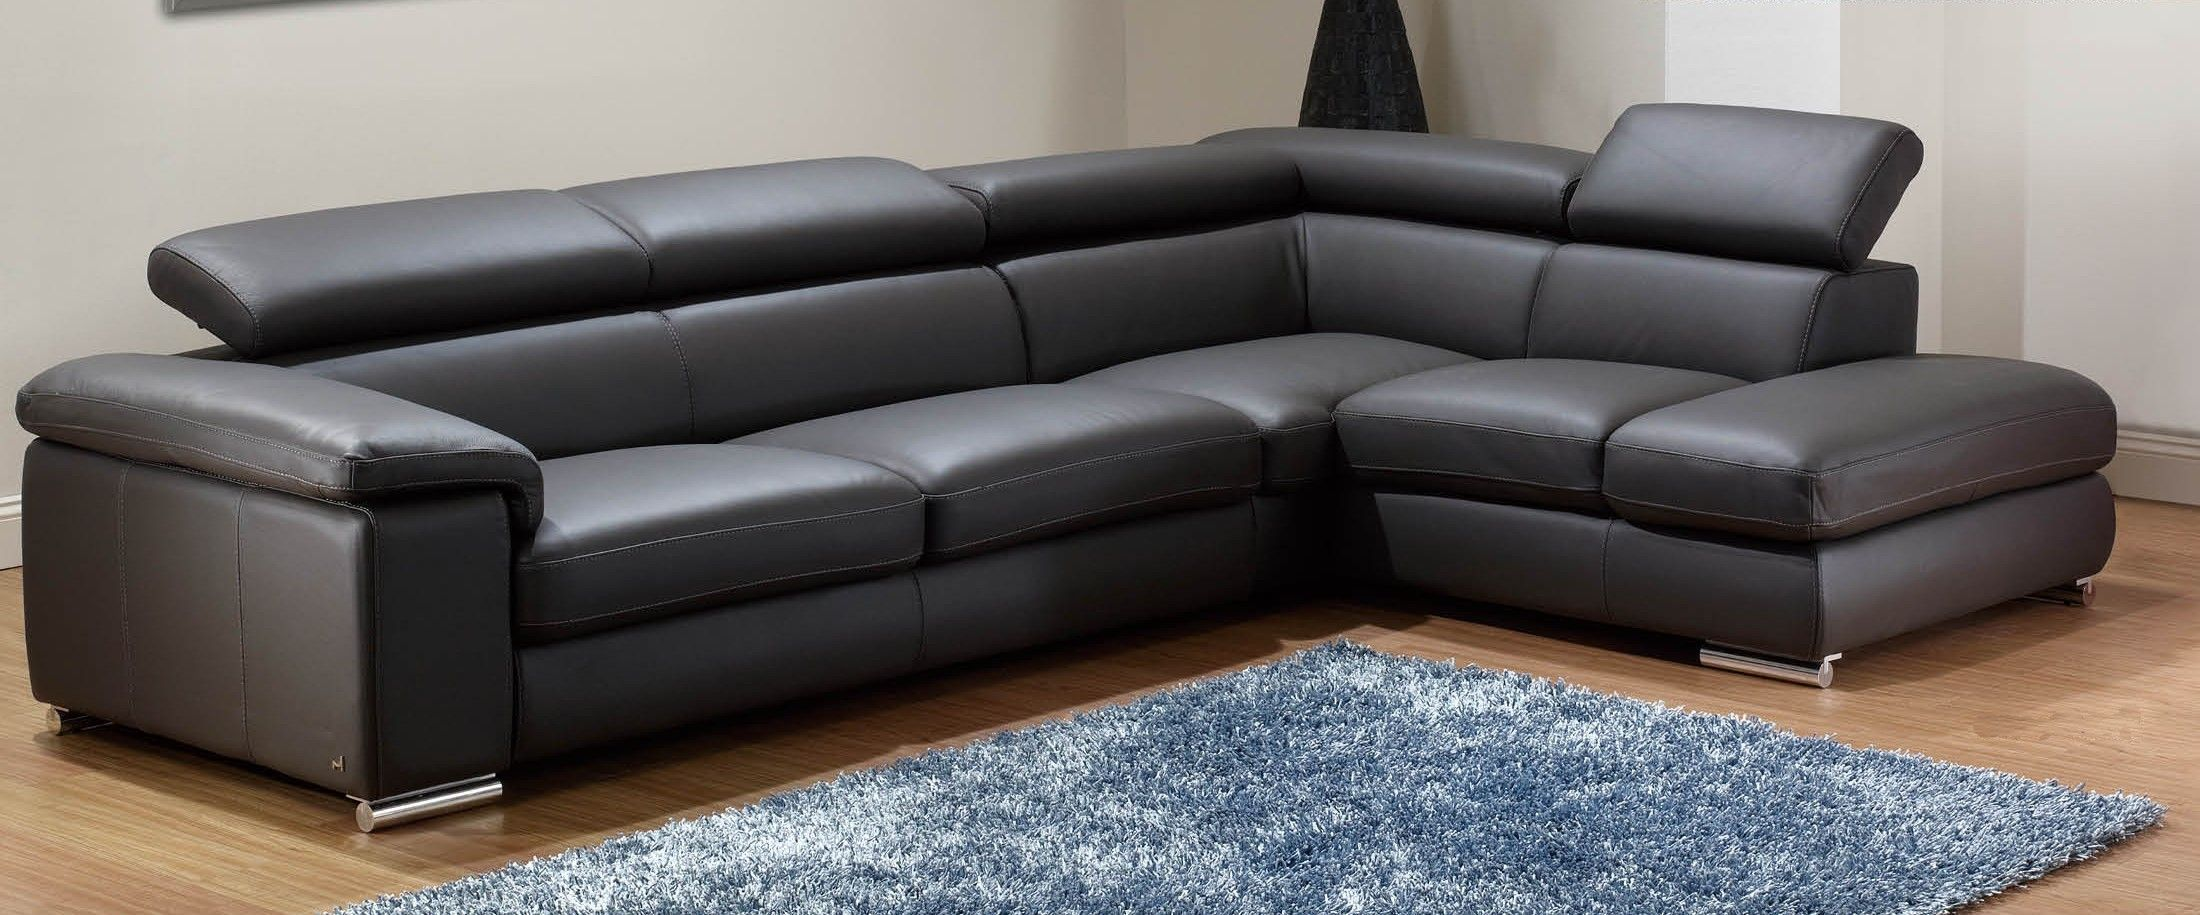 awesome Modern Leather Sectional Sofa Epic Modern Leather